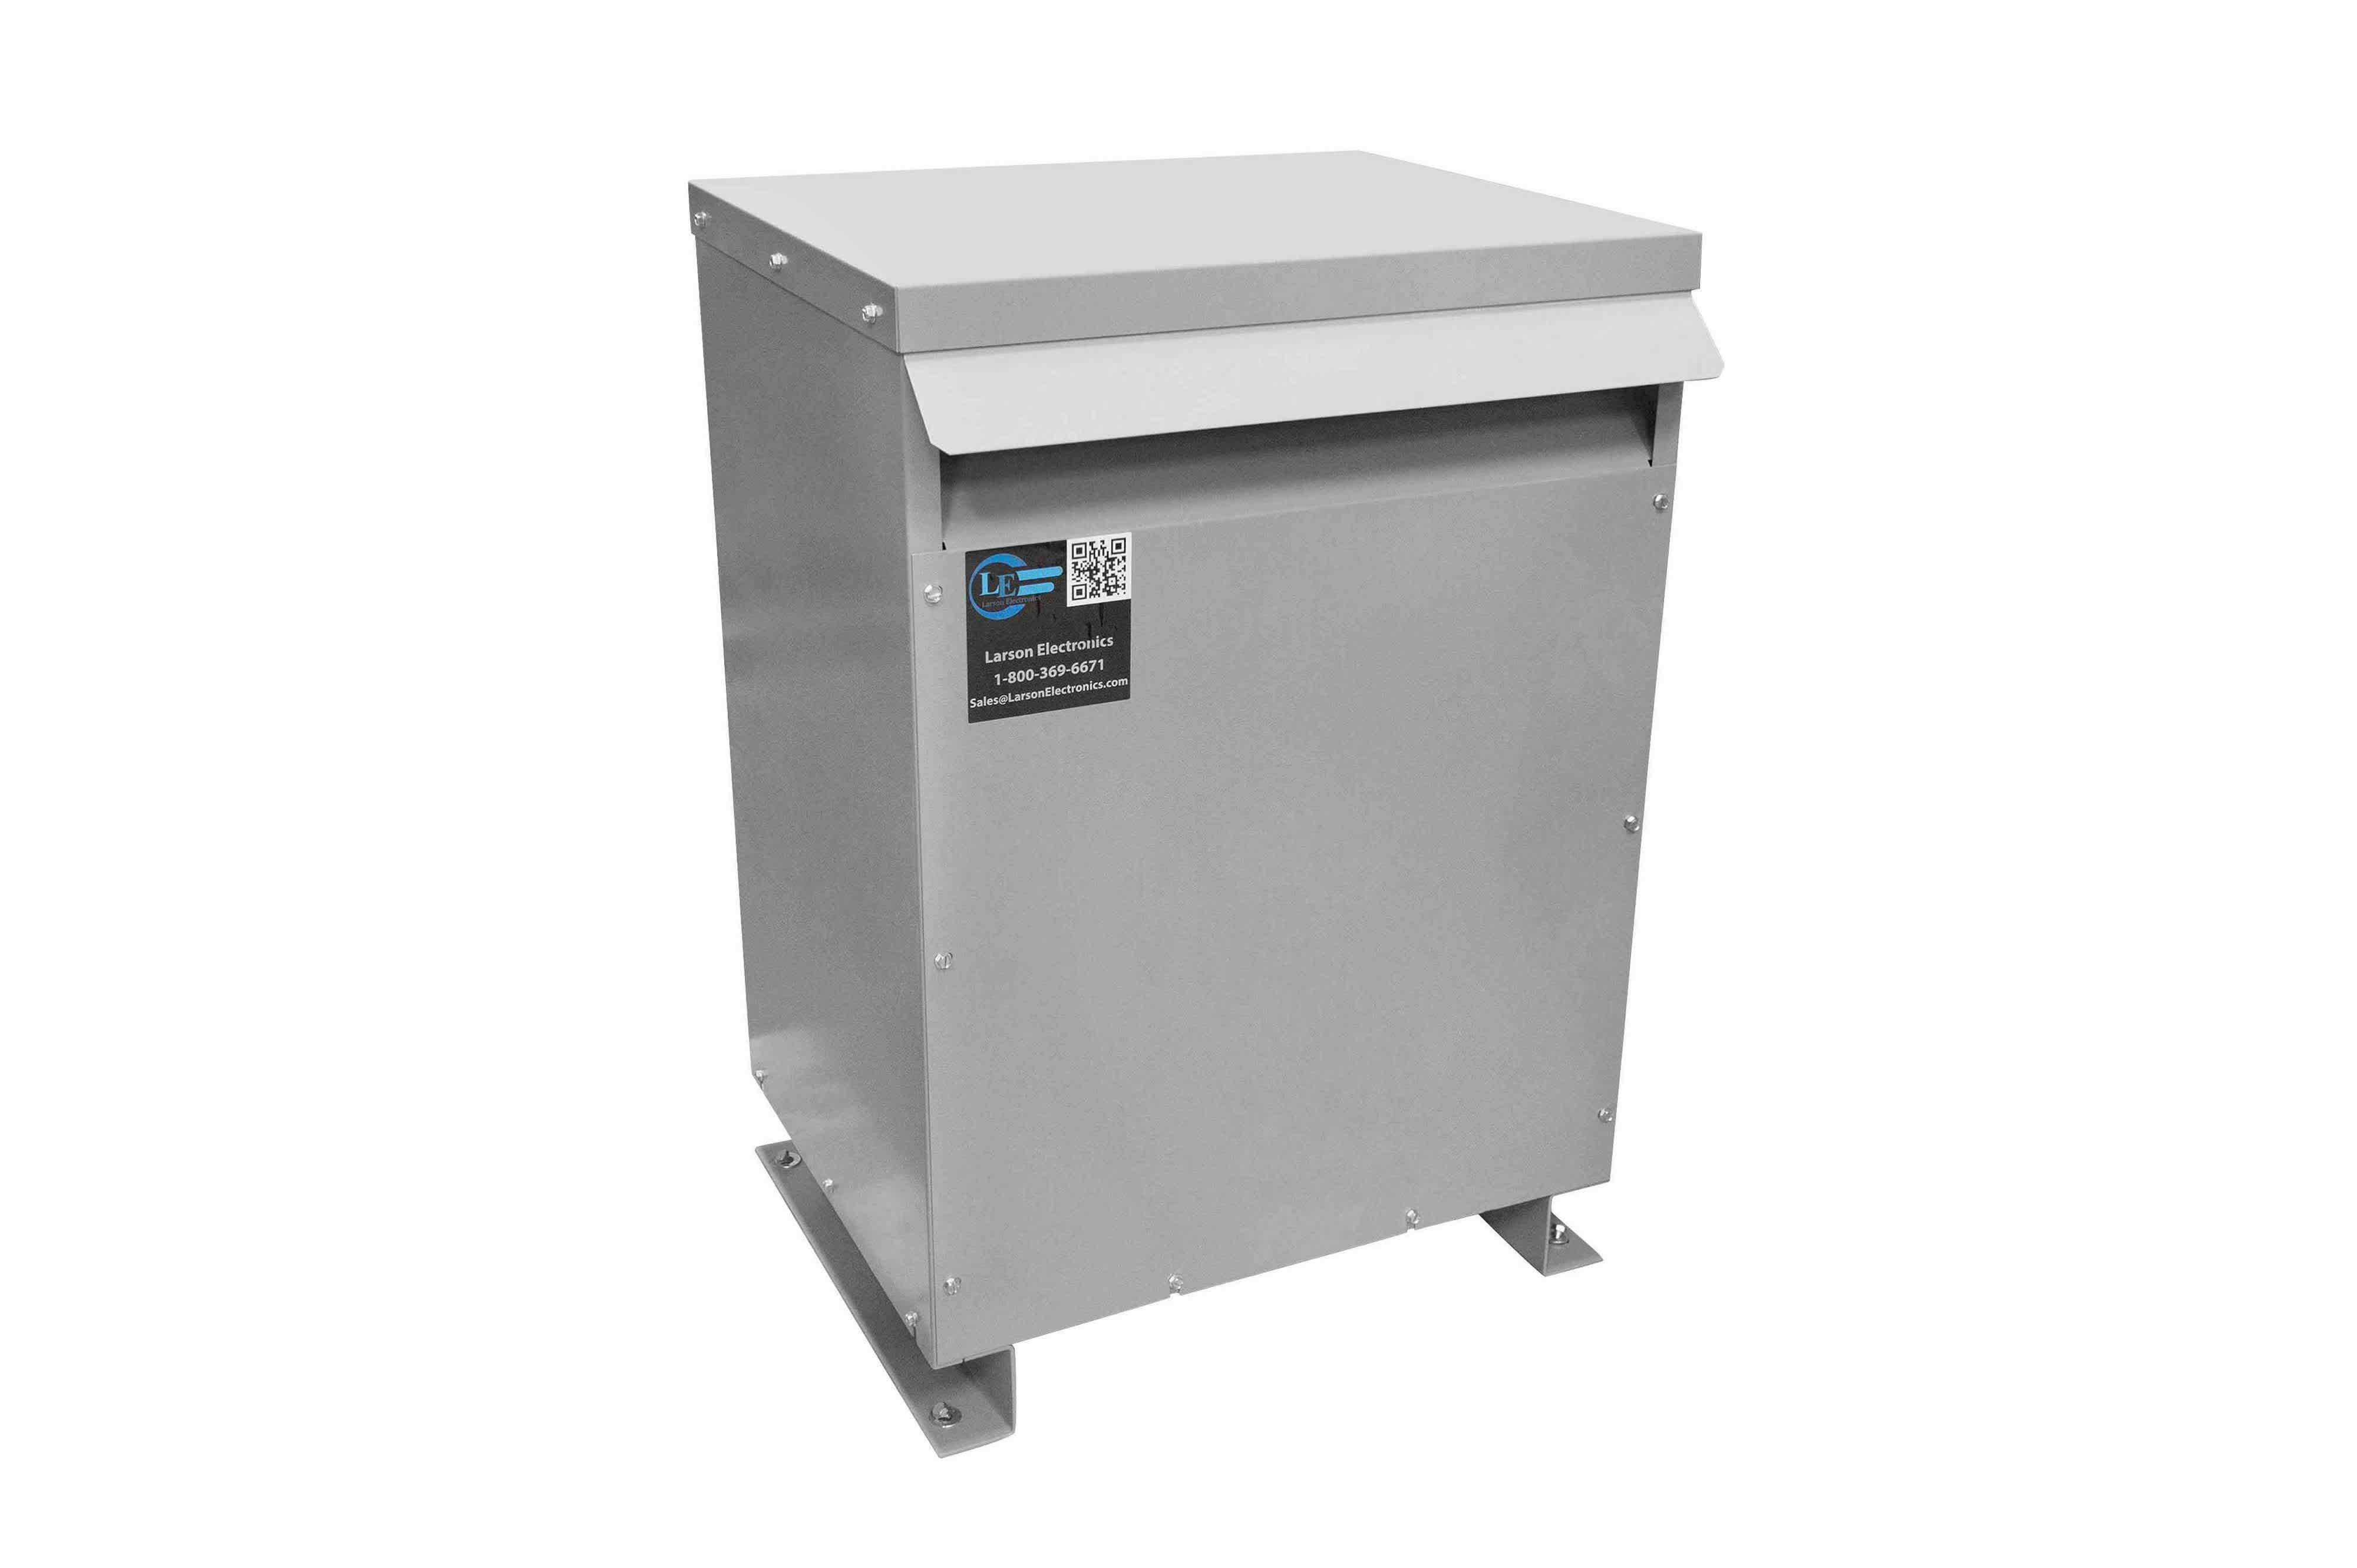 14 kVA 3PH Isolation Transformer, 600V Wye Primary, 400V Delta Secondary, N3R, Ventilated, 60 Hz